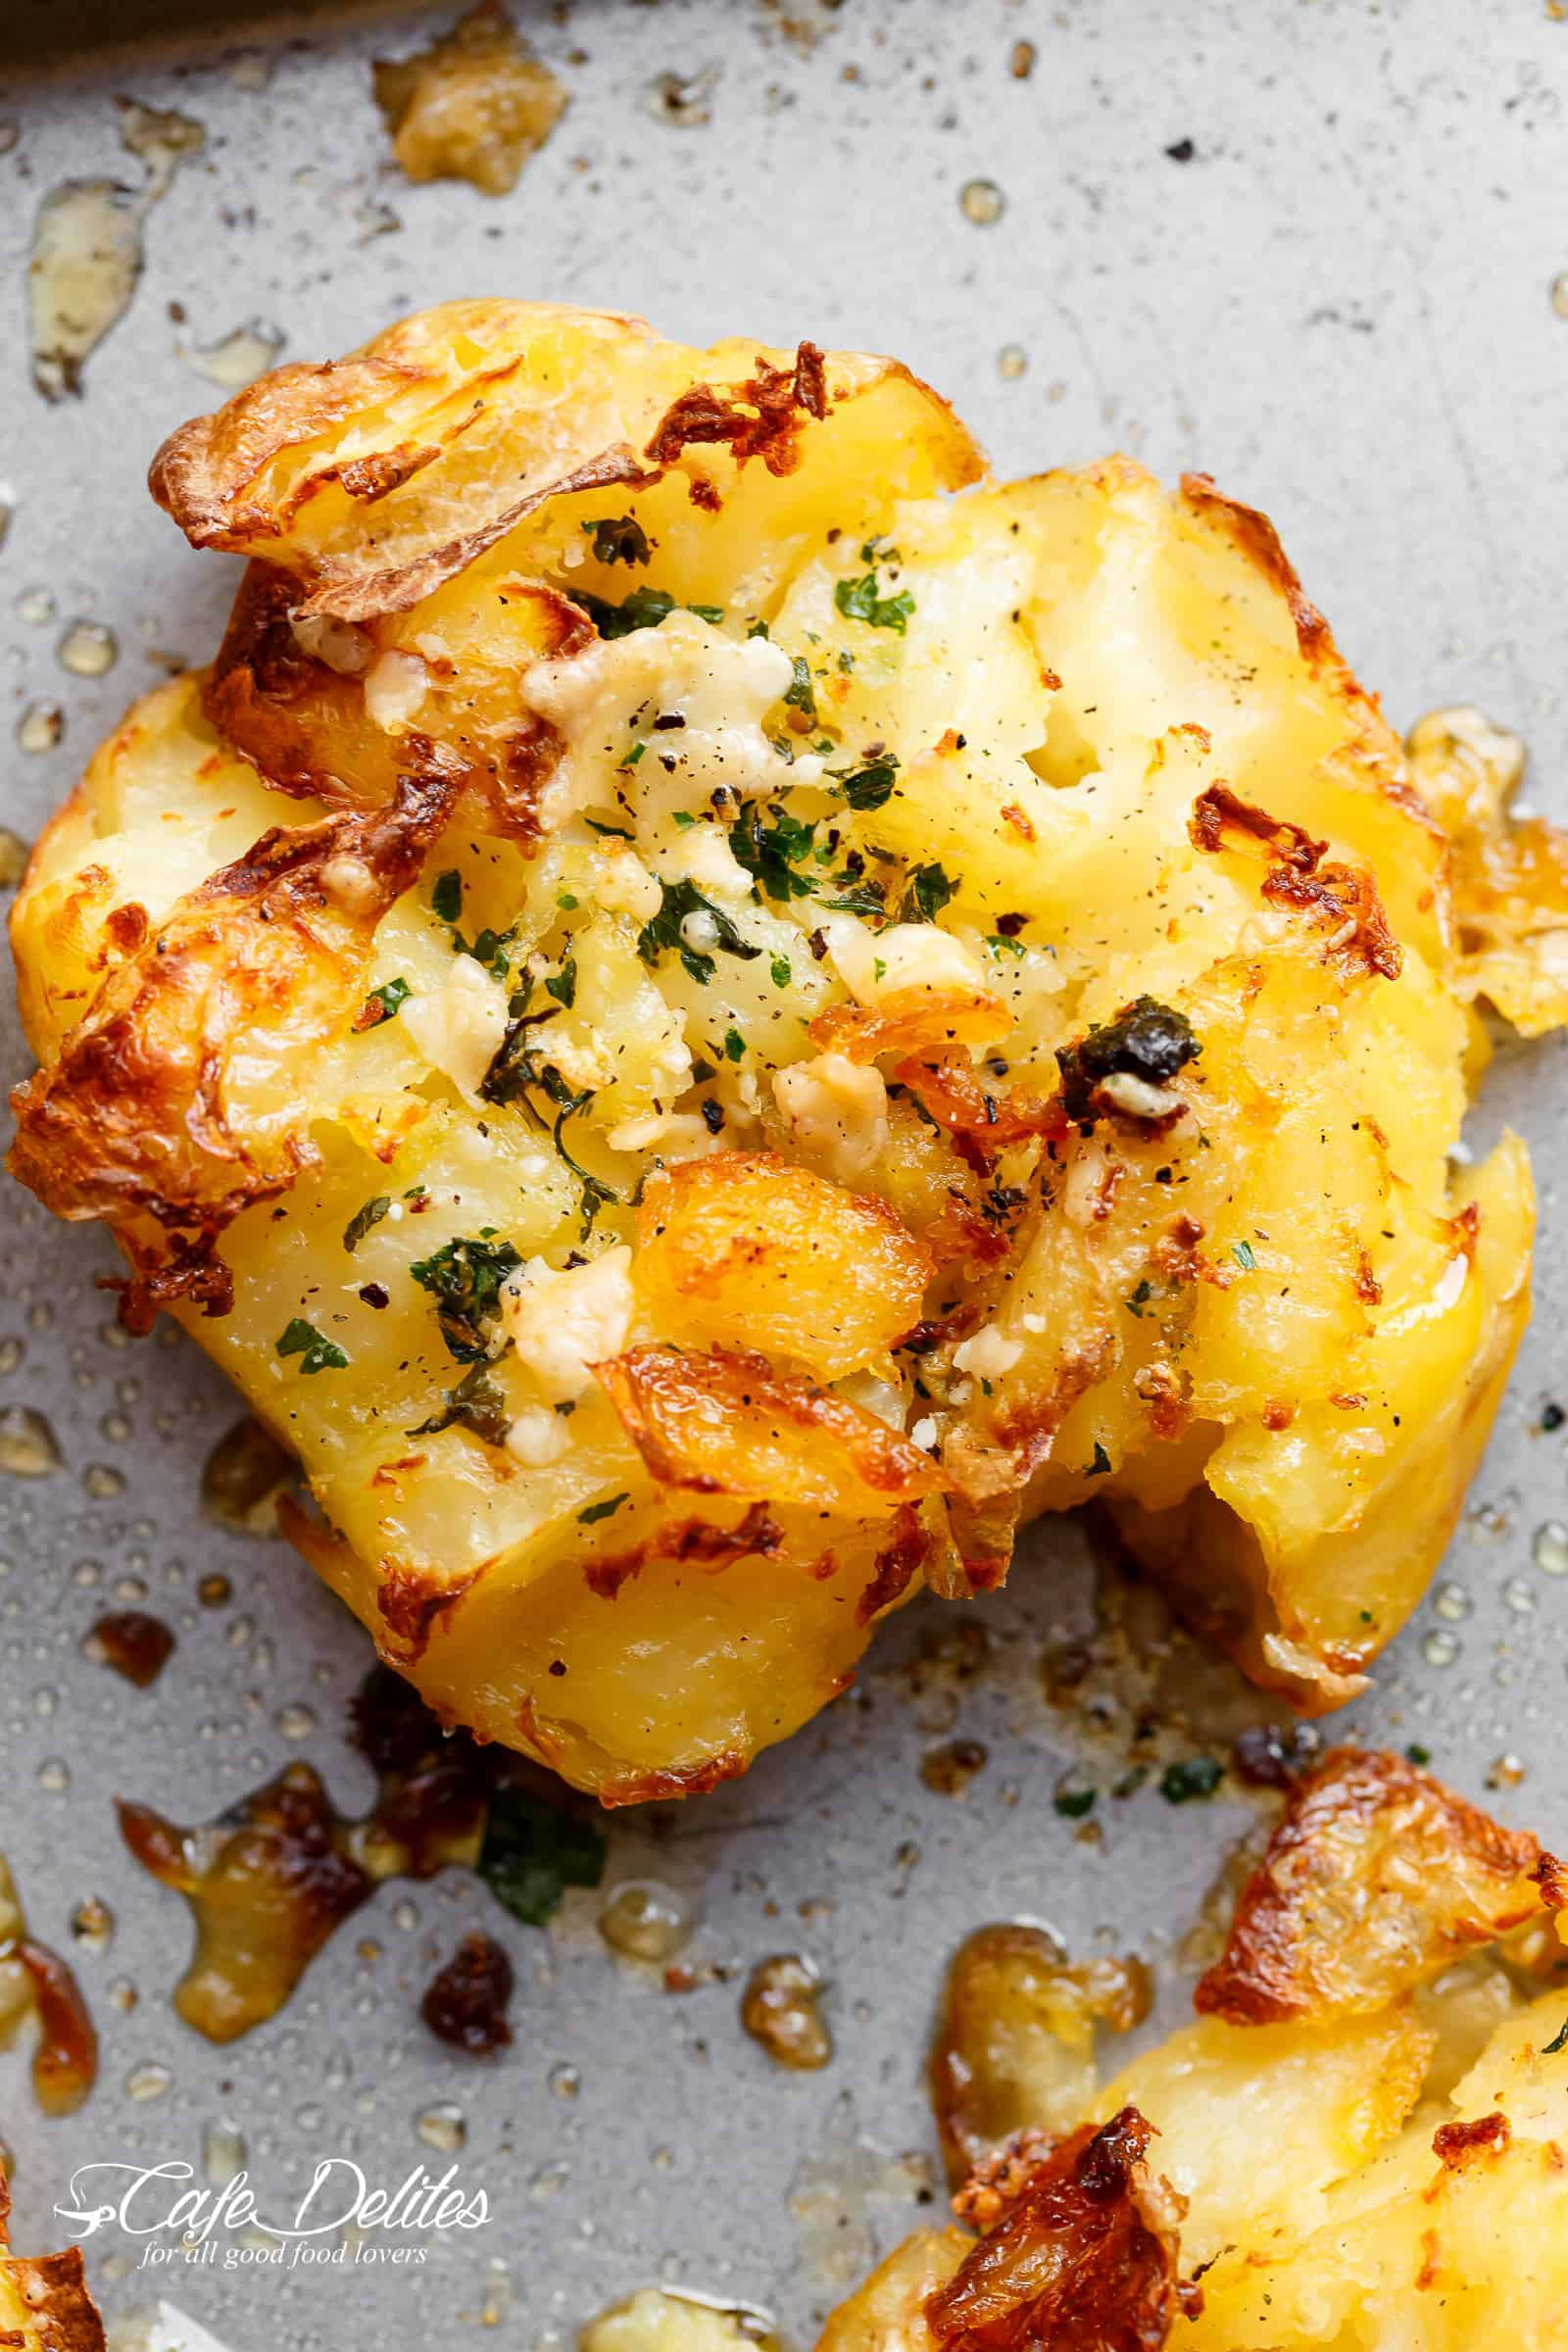 Crispy Garlic Butter Parmesan Smashed Potatoes with crispy edges that will send you over the edge! | http://cafedelites.com